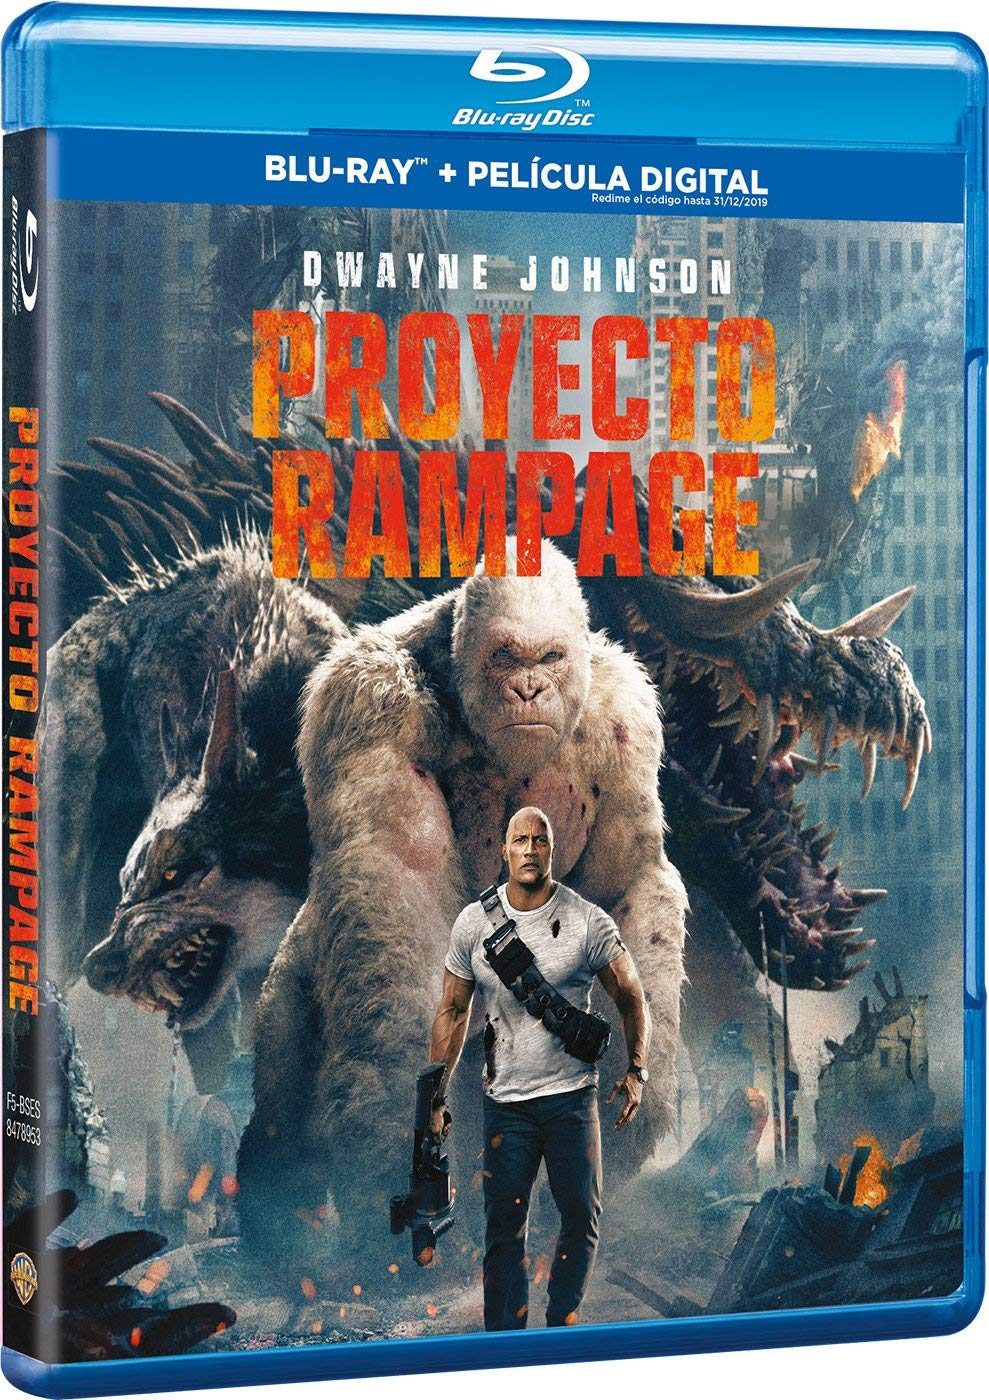 Proyecto Rampage Blu-ray